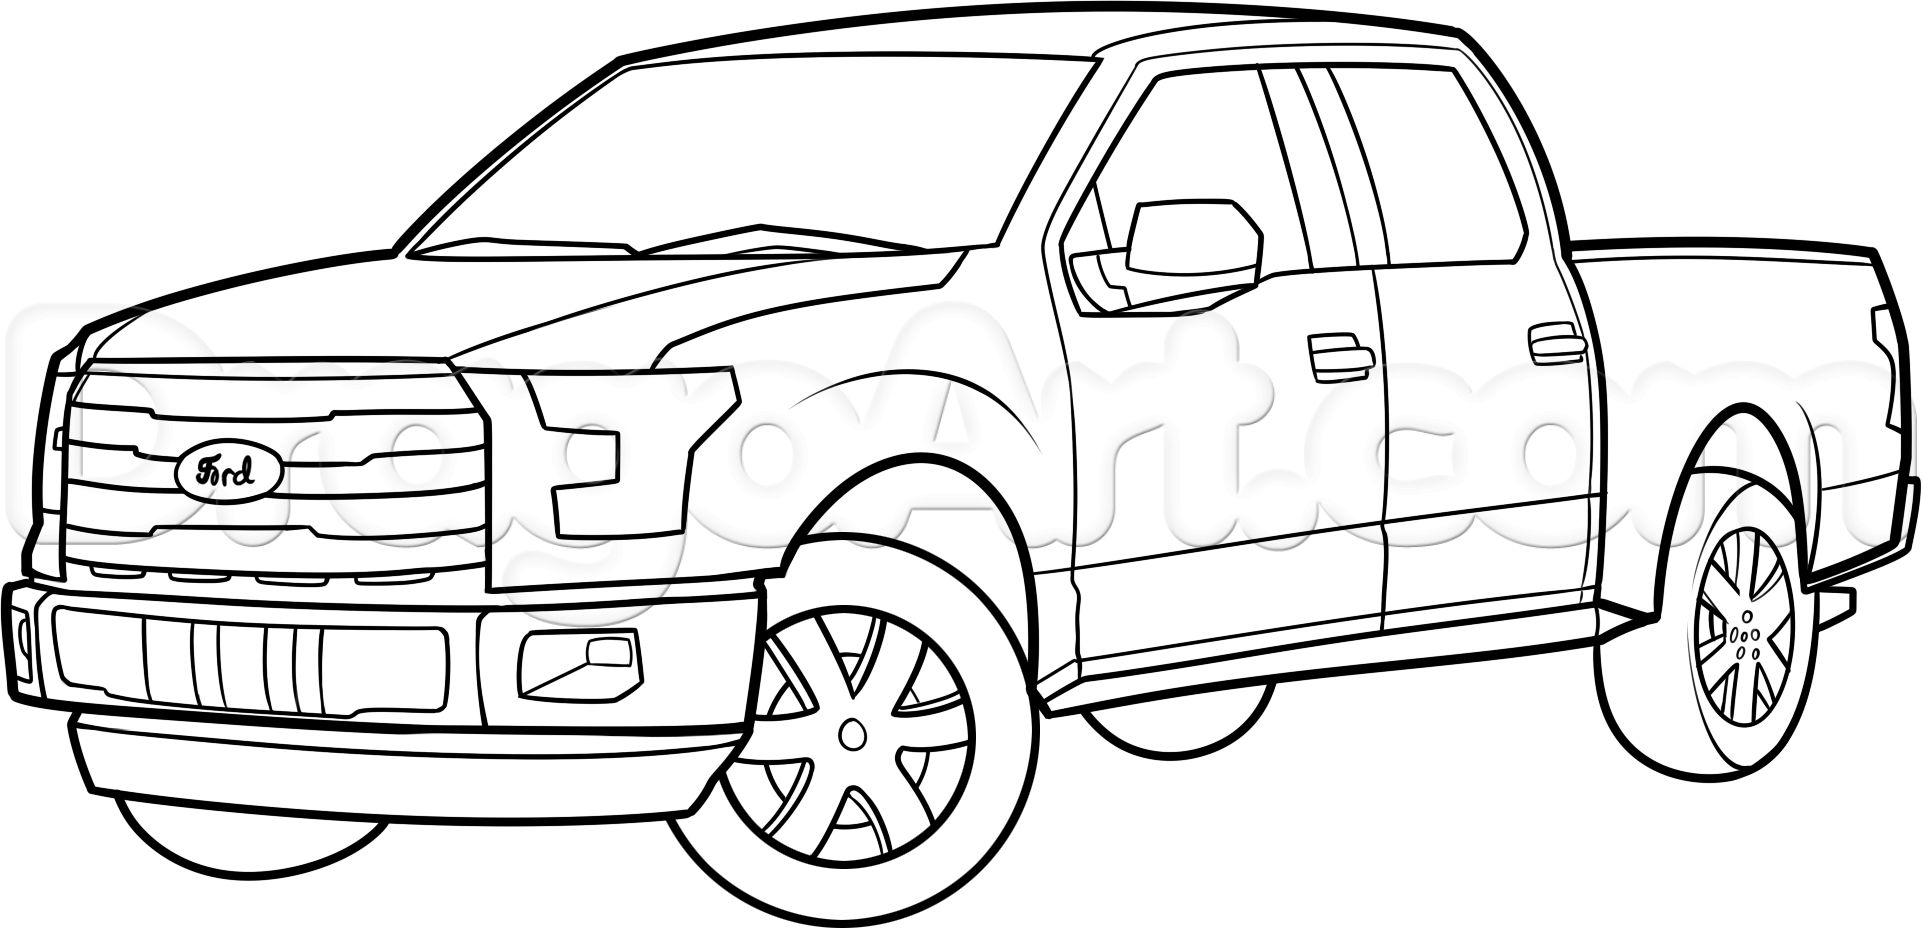 ford raptor coloring ford raptor coloring pages coloring pages ford coloring raptor